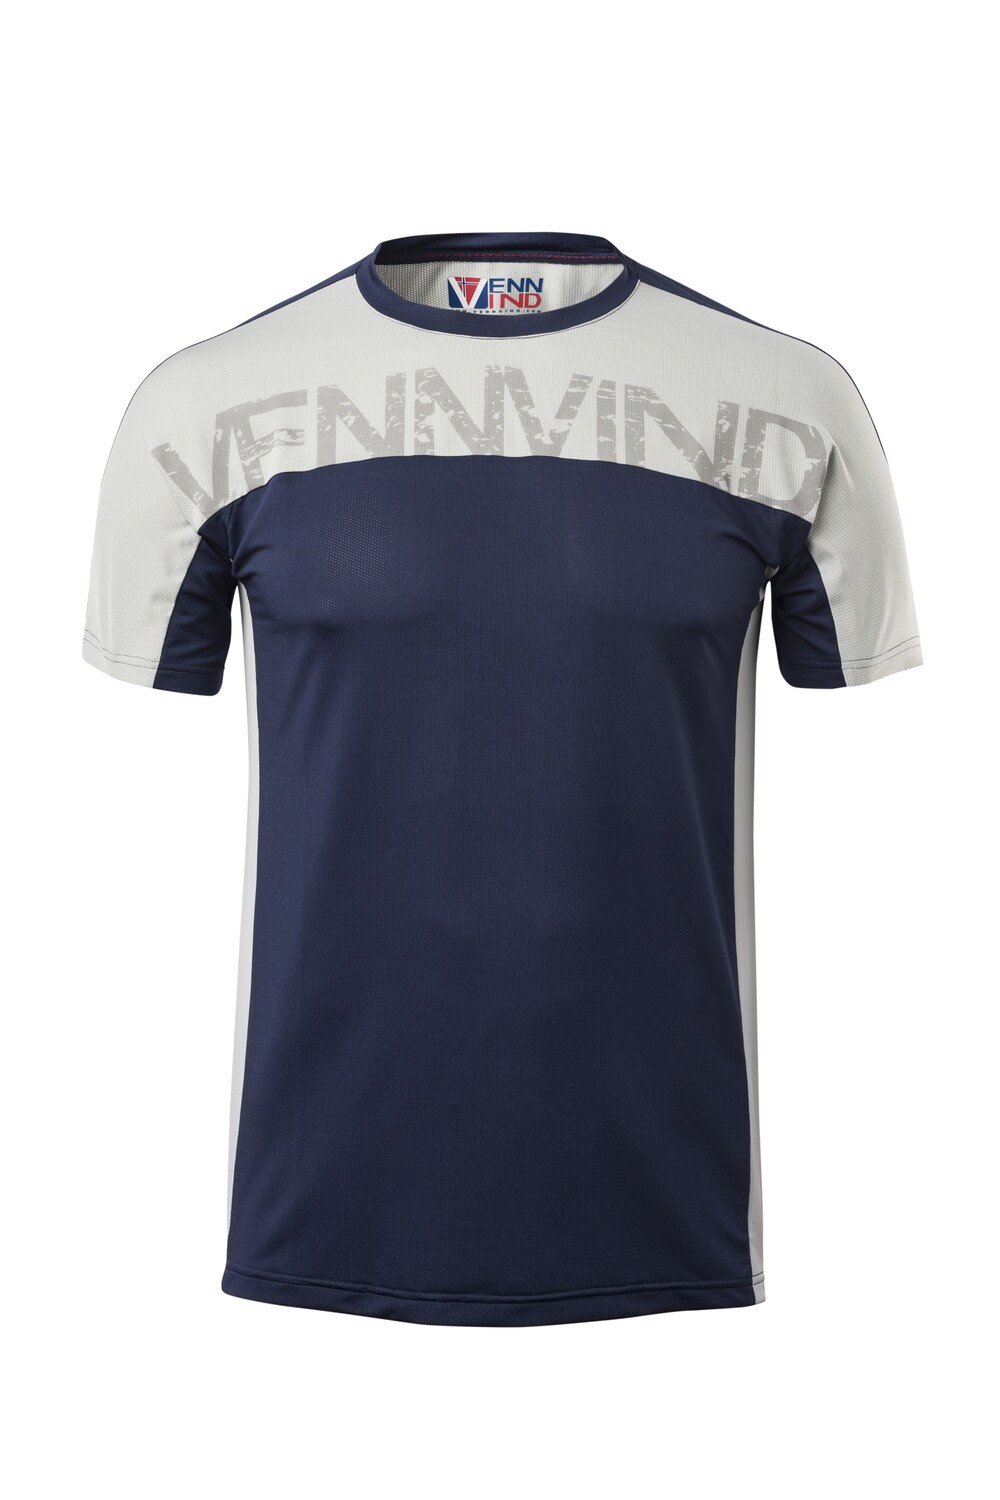 T-Shirt Herren Dress BLue